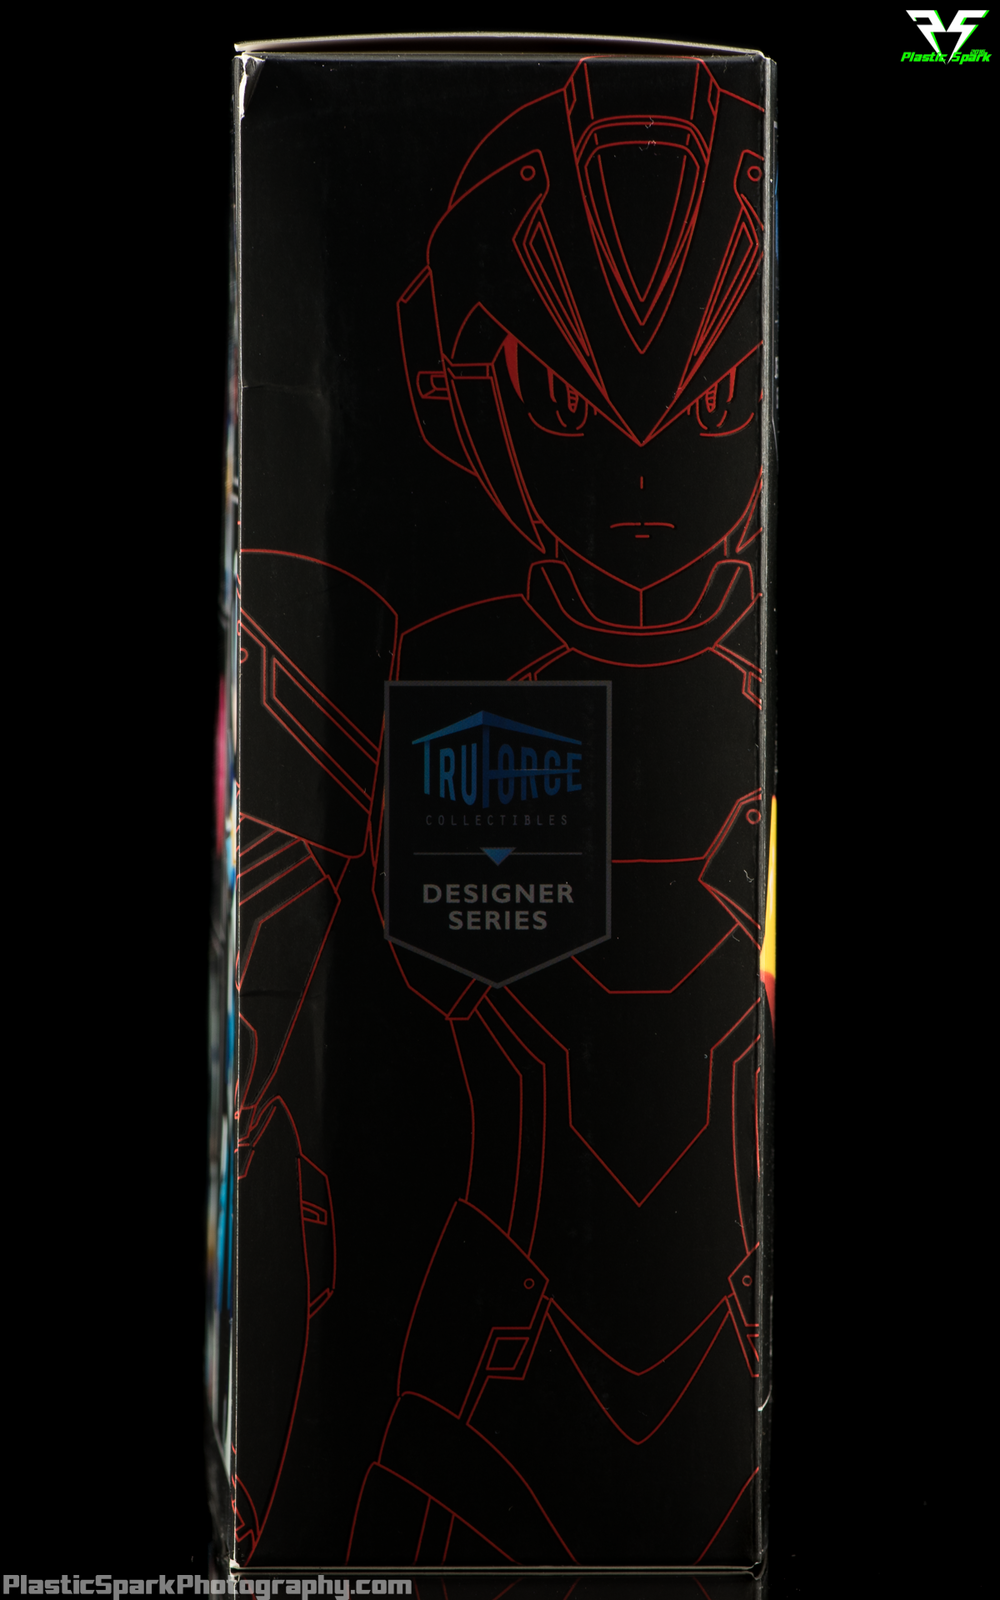 Truforce-Megaman-X-Boost-Packaging-(3-of-6).png